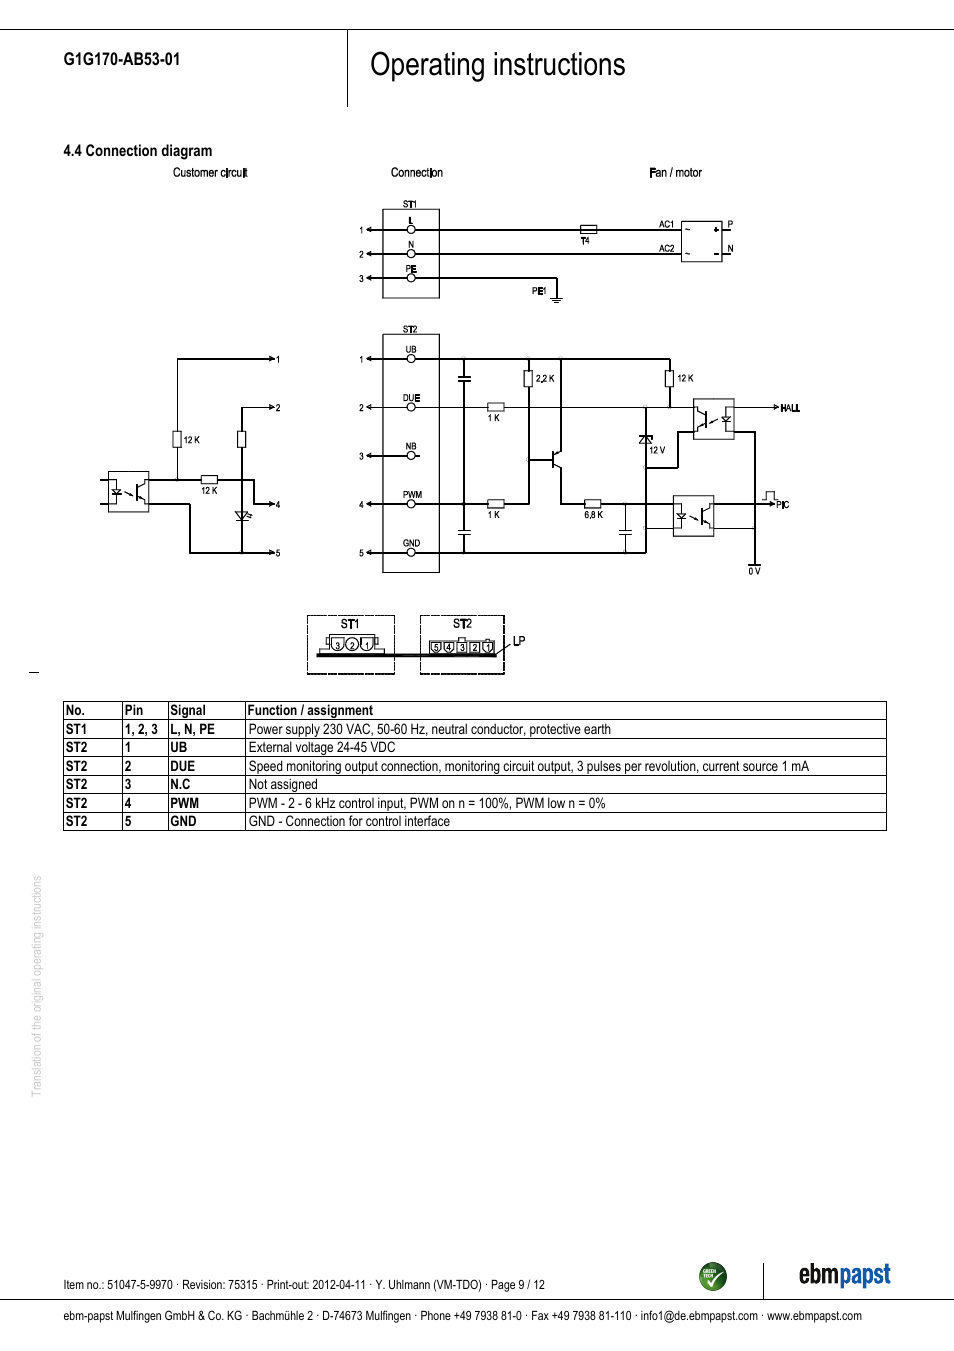 ebm papst g1g170 ab53 01 page9 operating instructions ebm papst g1g170 ab53 01 user manual ebm papst wiring diagram at edmiracle.co